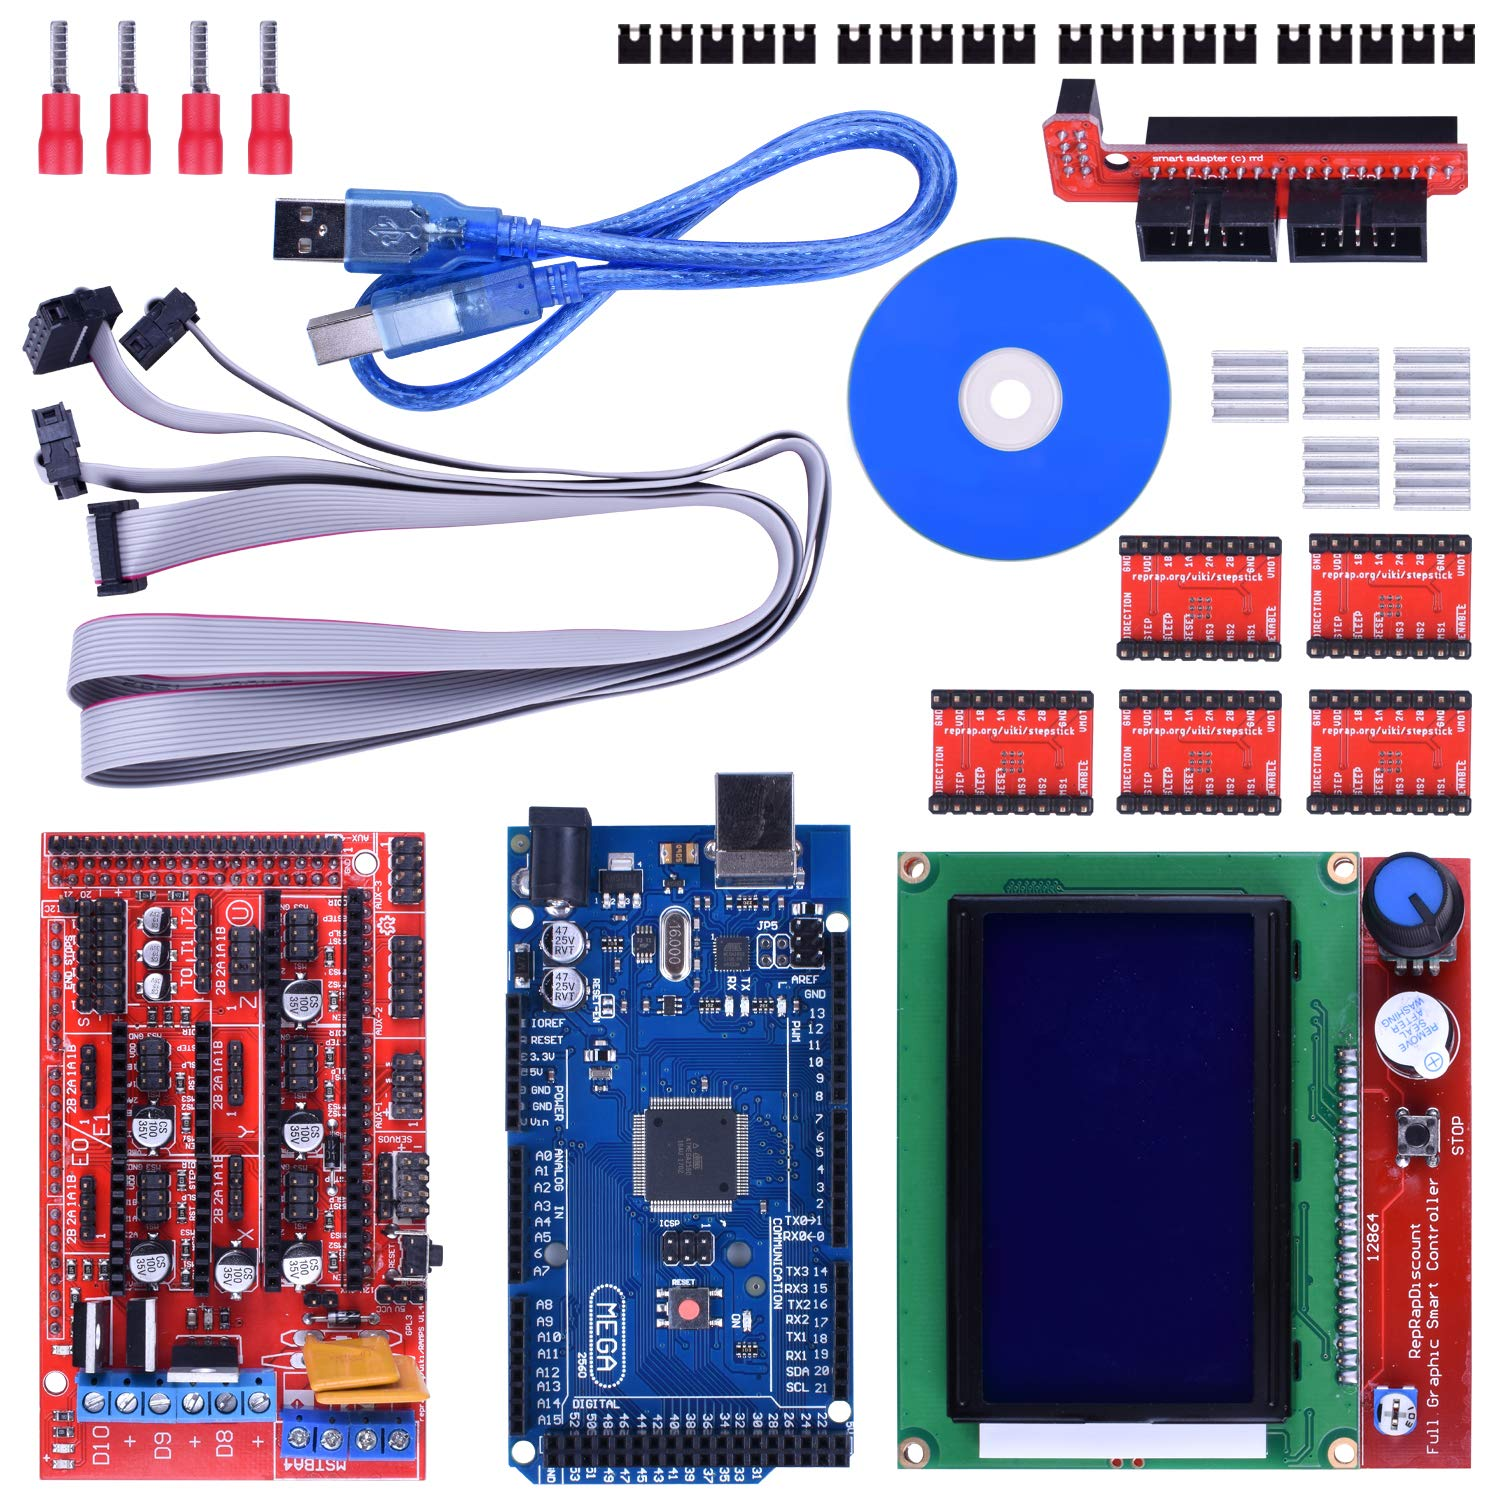 3d Printer Controller Kit For Arduino Mega 2560 Uno R3 Diy Connections Of Ramps 1 4 Starter Kits 14 With Upgraded Mosfet 5pcs A4988 Stepper Motor Driver Lcd